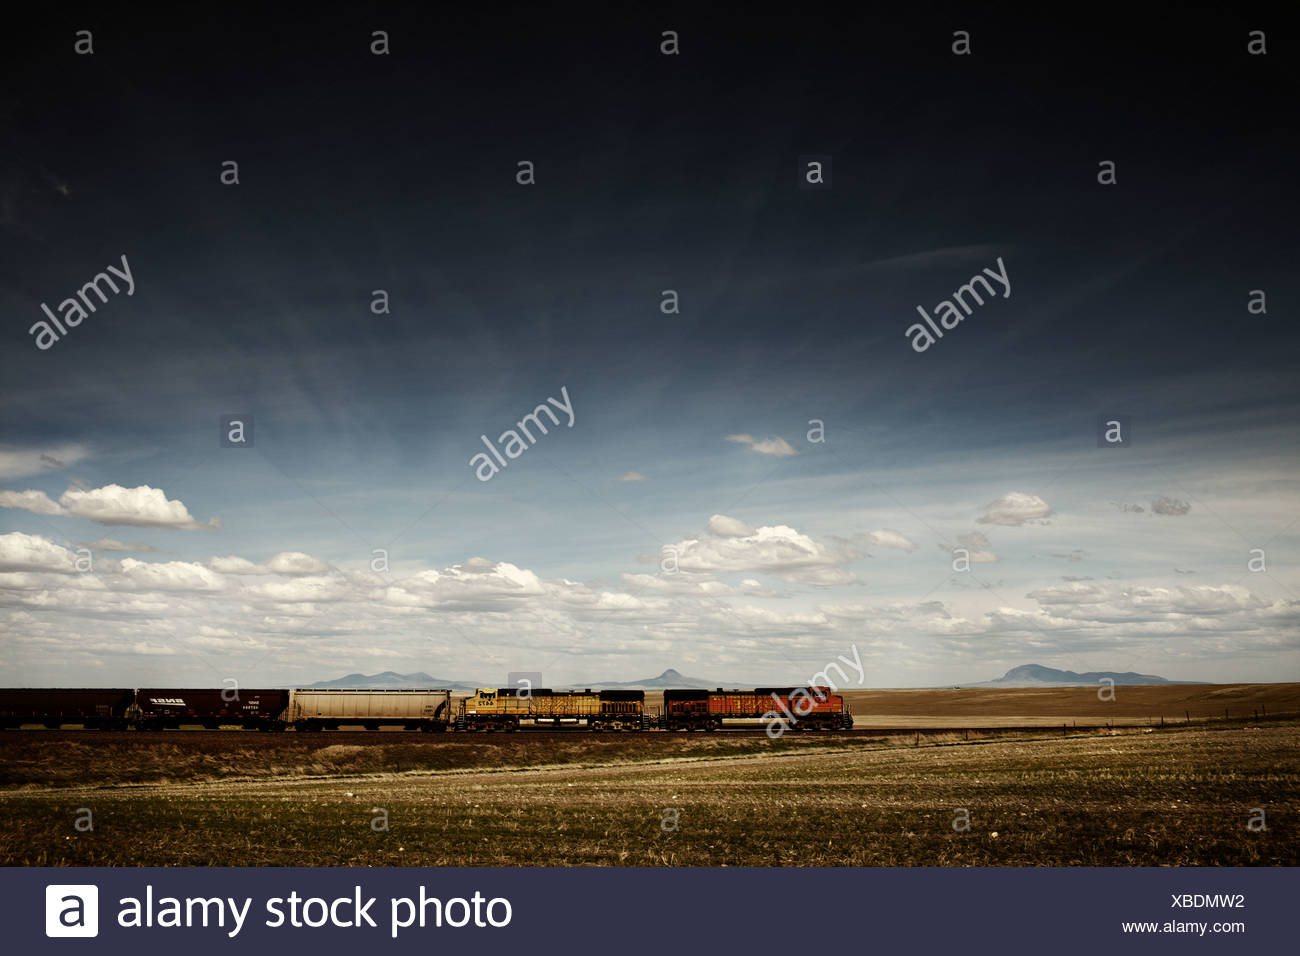 A train rolls across the American prairie south of the Sweetgrass Hills in Montana. - Stock Image